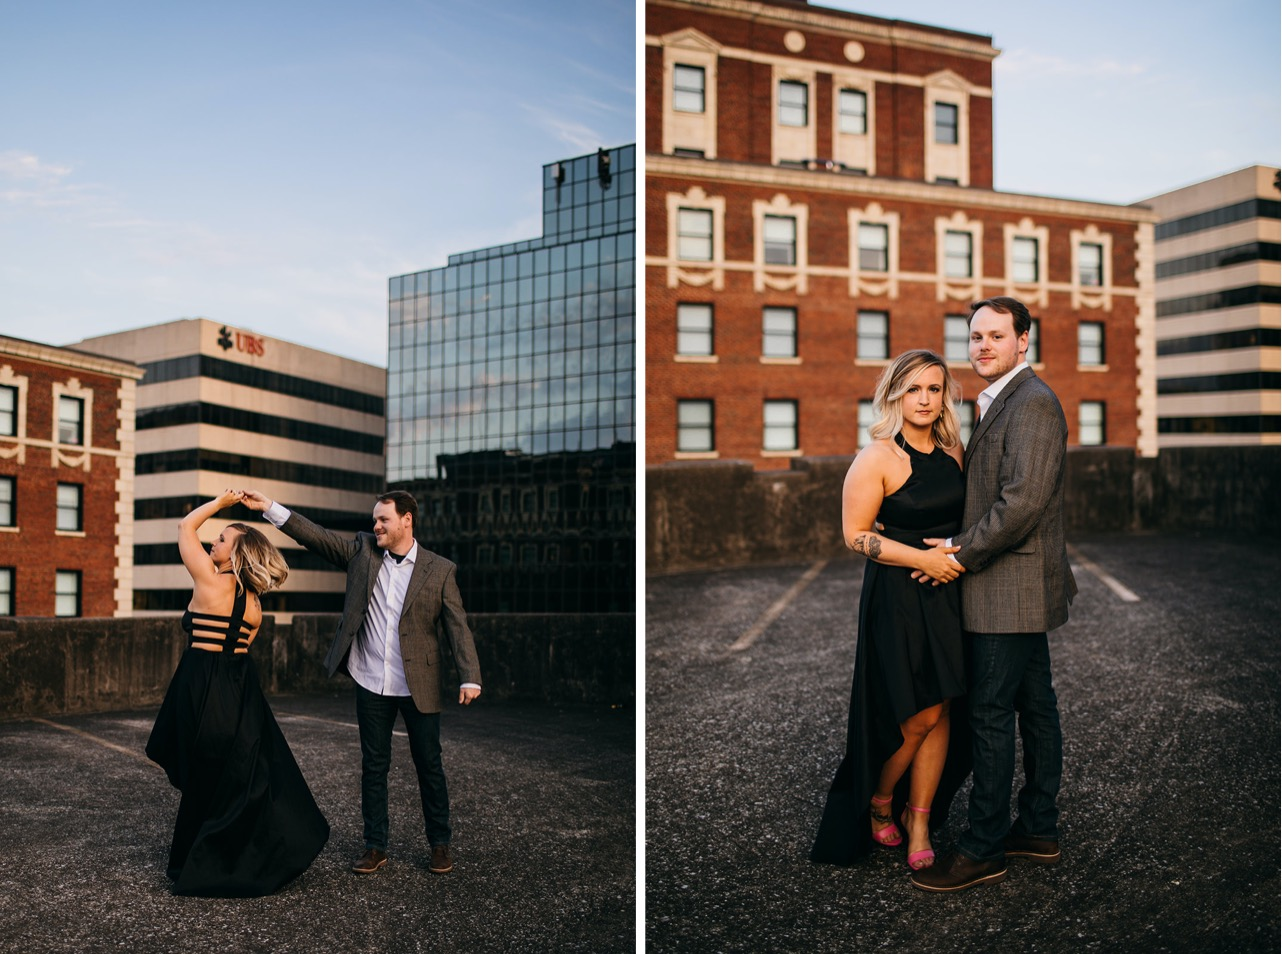 Engaged couple in formalwear dances together on a rooftop in downtown Chattanooga.